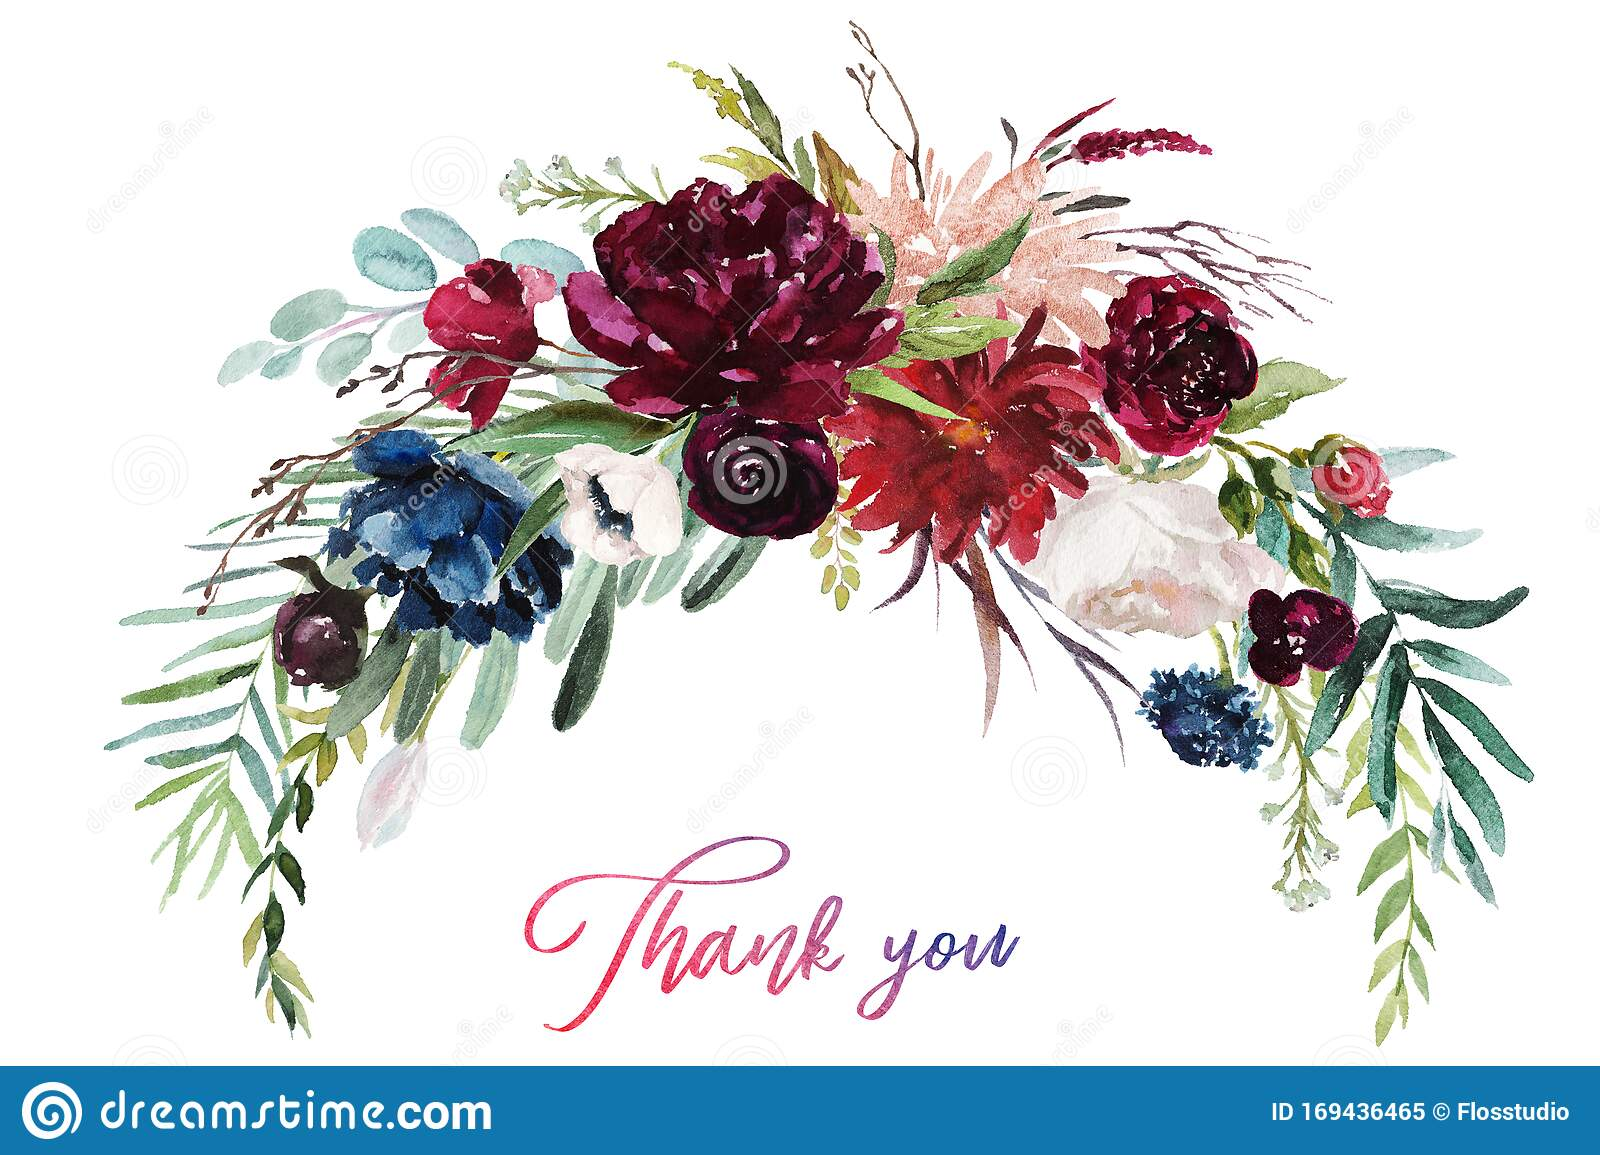 Watercolor Floral Illustration Flowers Burgundy Bouquet Stock Illustration Illustration Of Leaf Floral 169436465